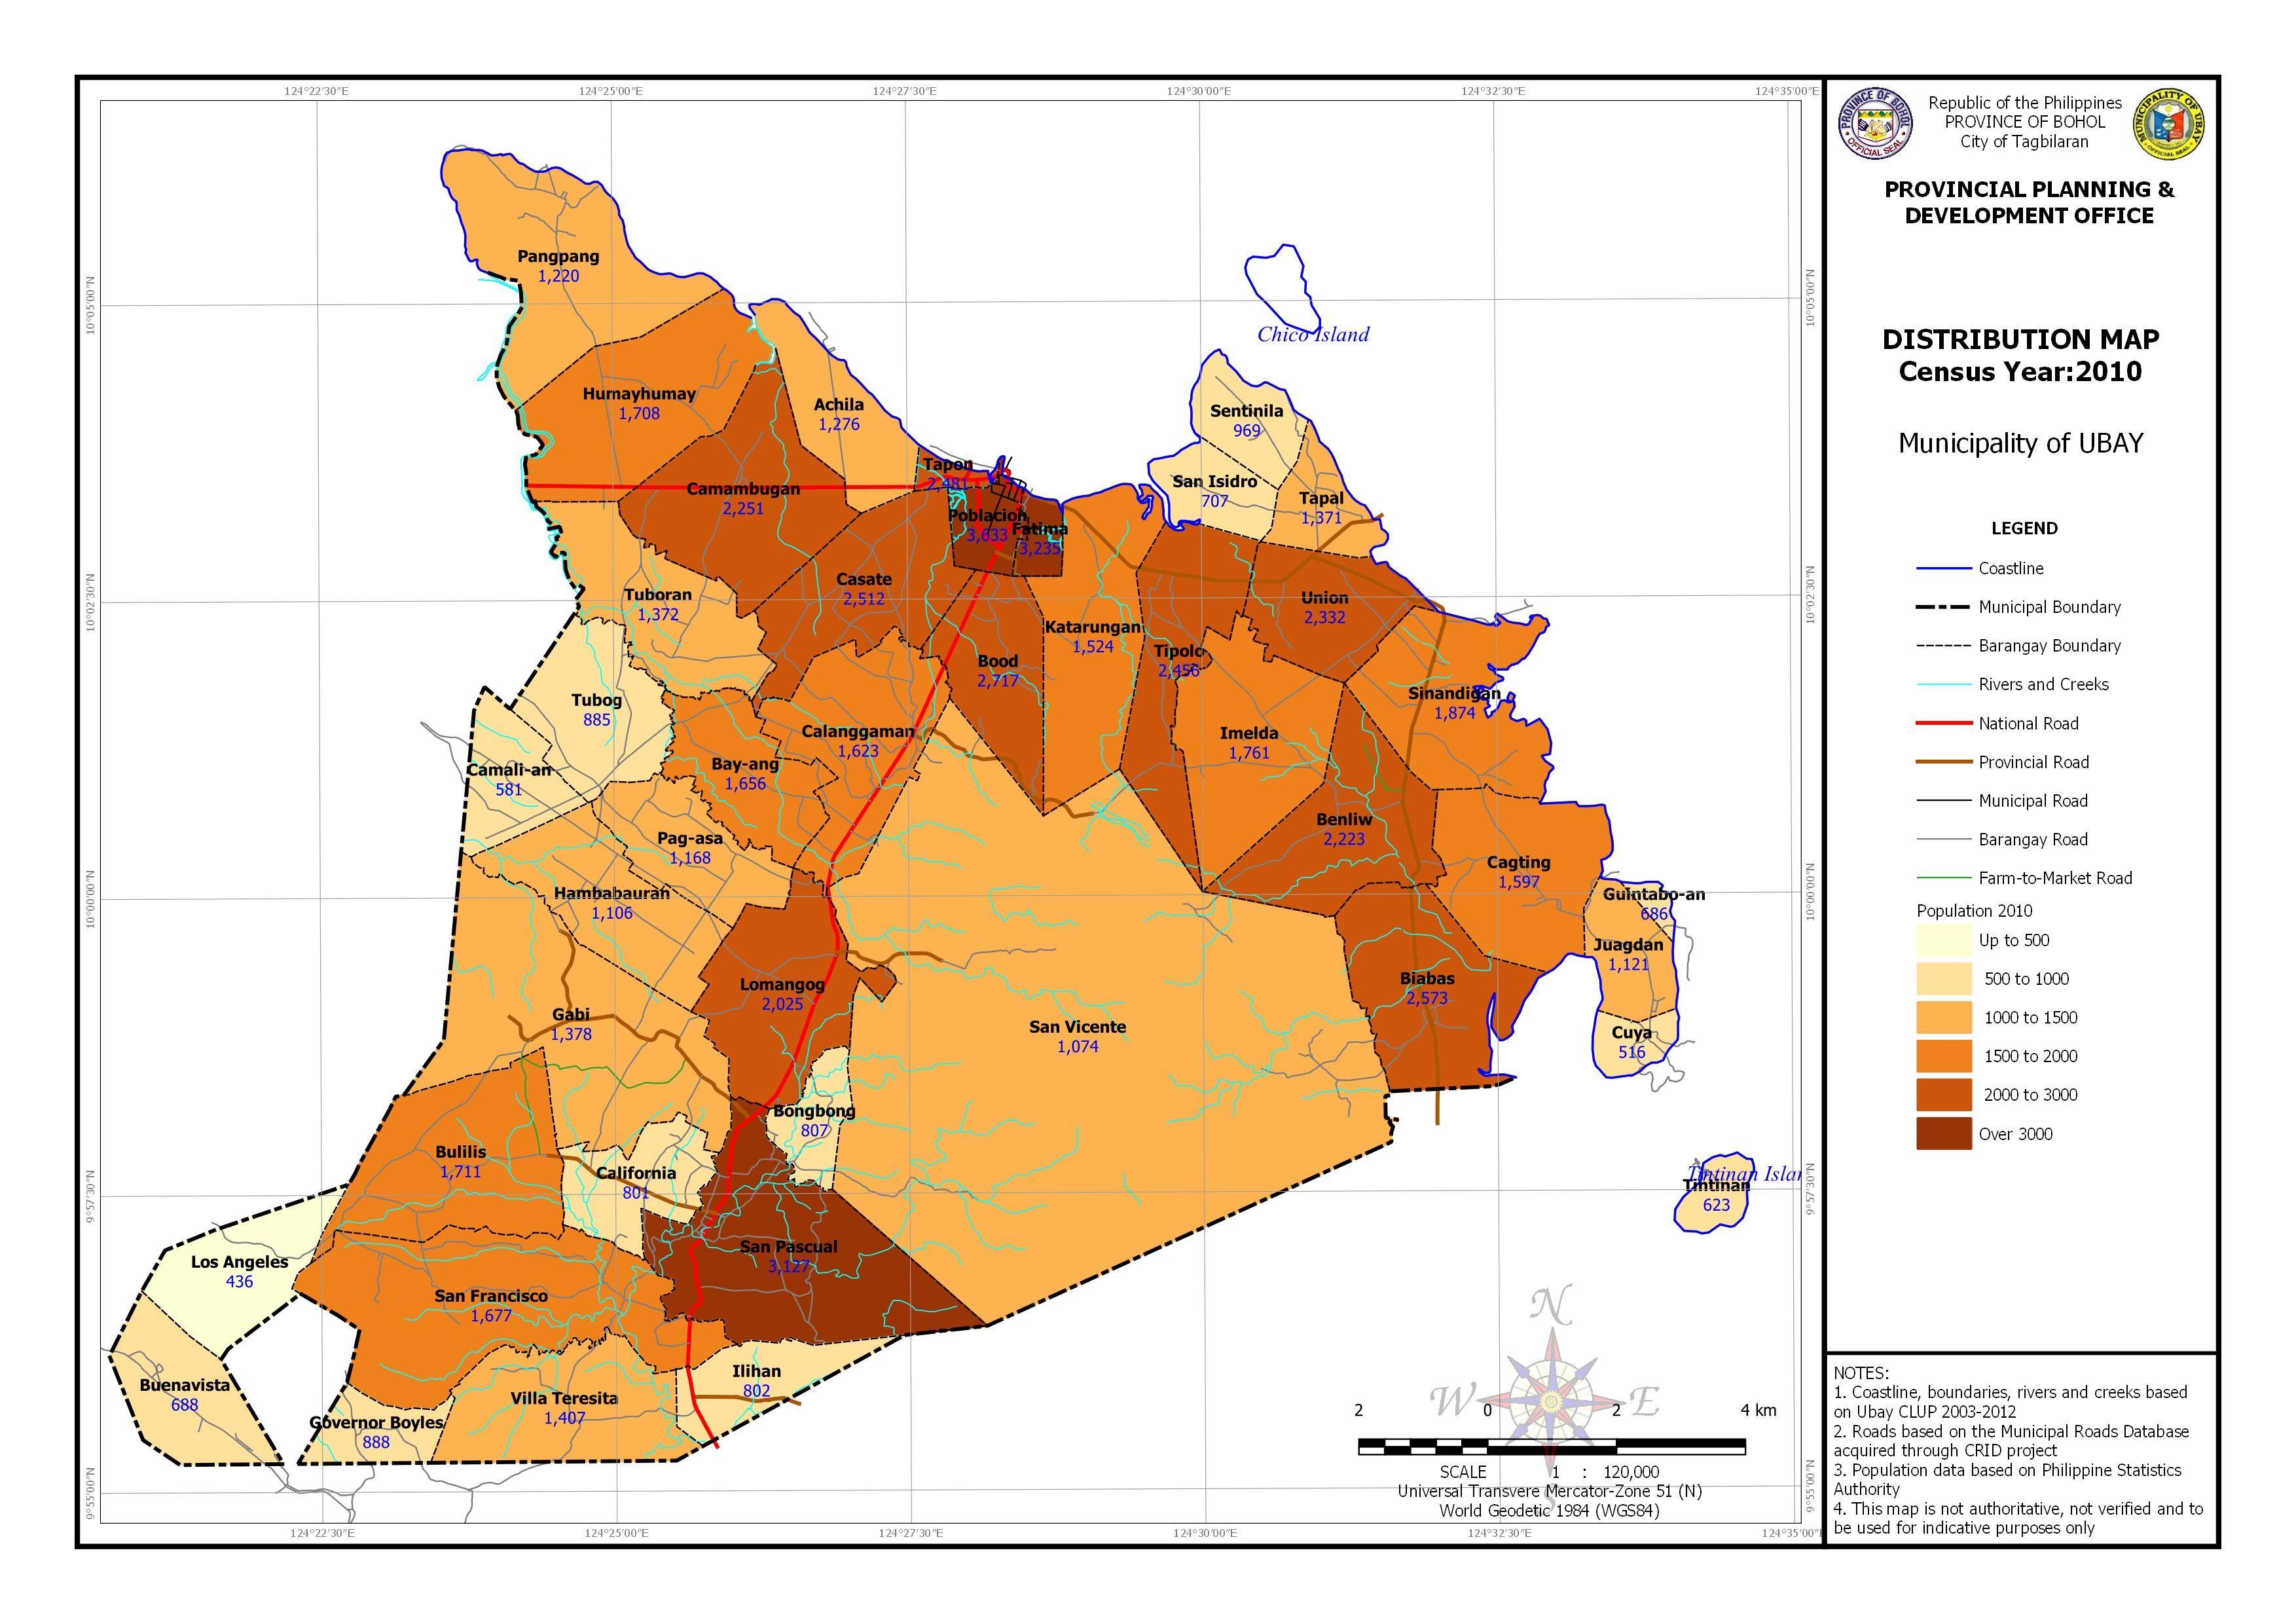 Population Distribution Census Year: 2010 Map